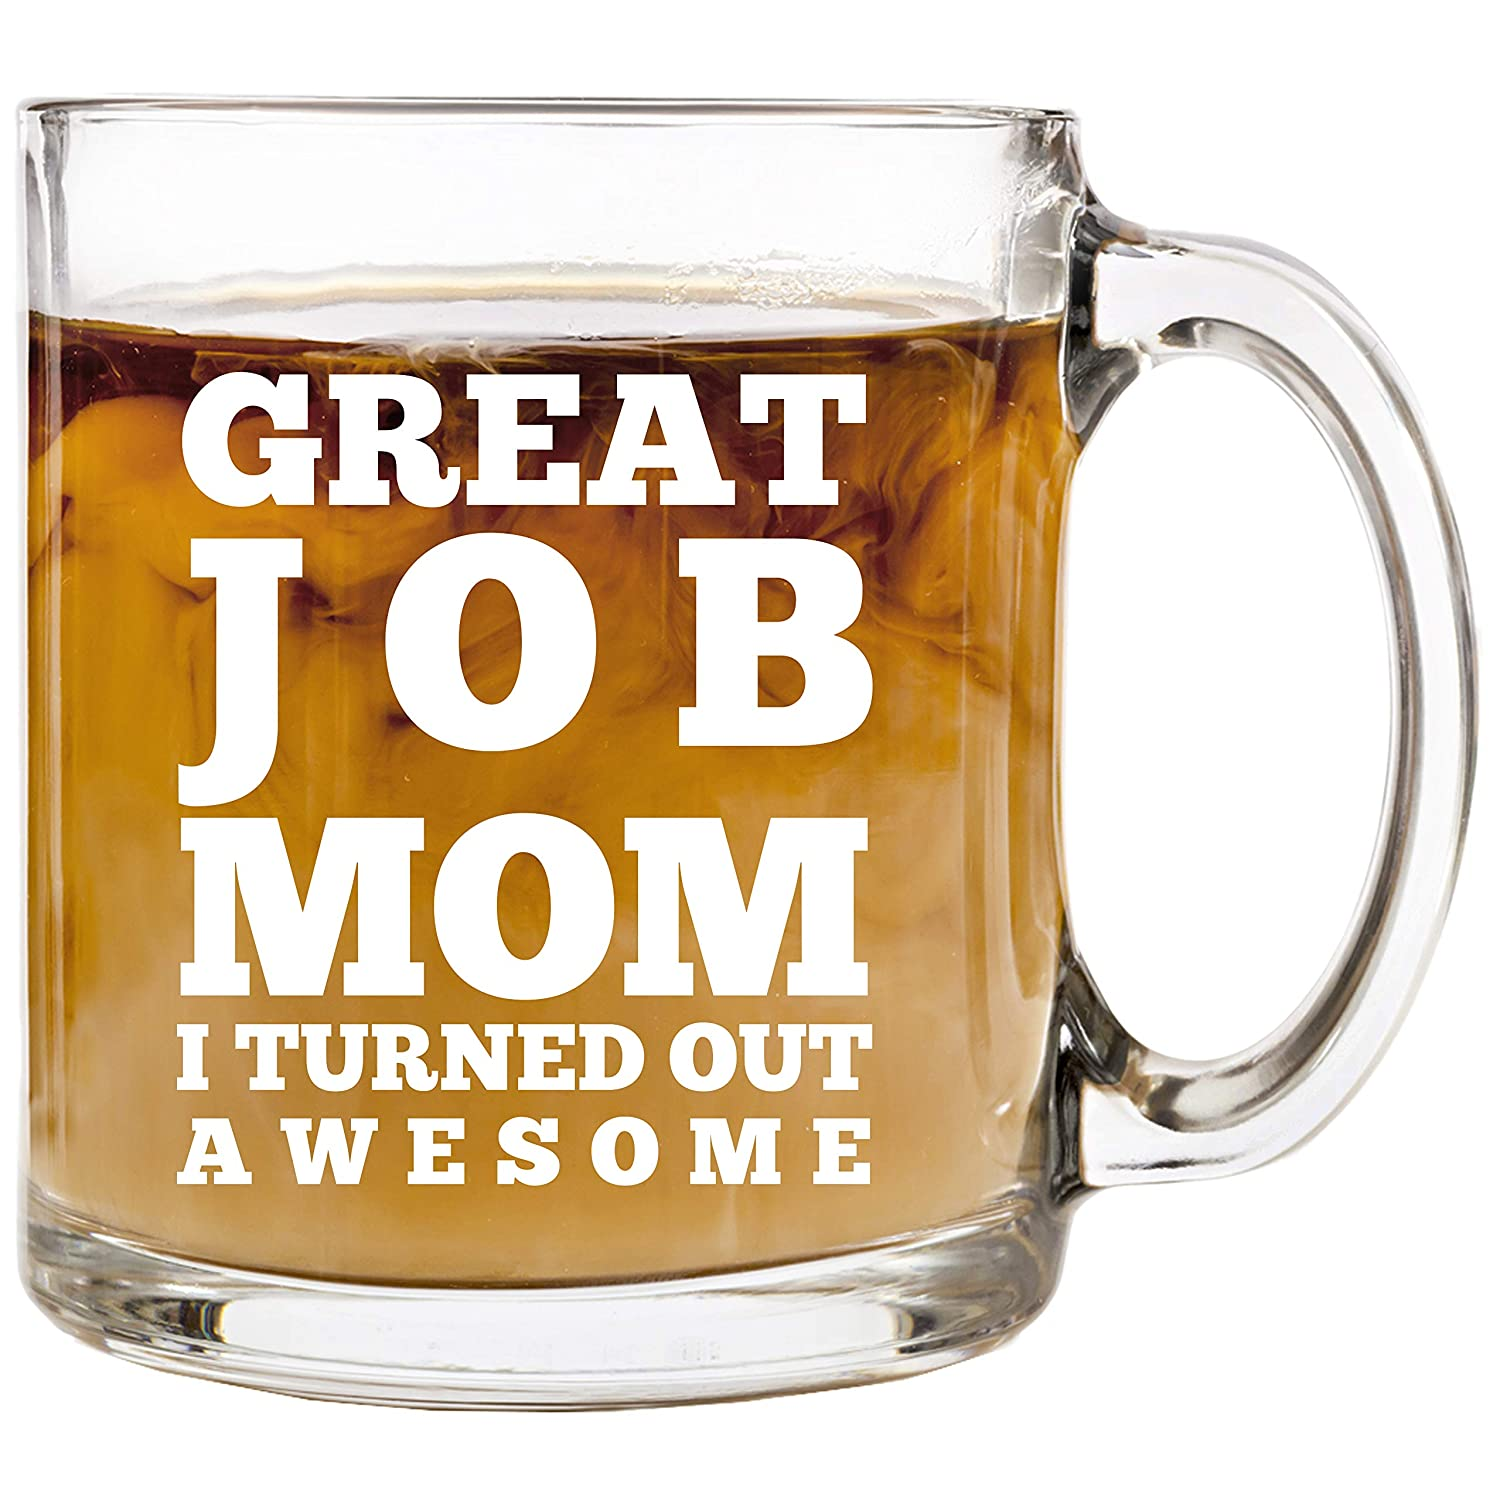 Great Job Mom | 13 oz Glass Coffee Cup Mug | Birthday Christmas Gift Present Ideas for Women Mom Mother from Daughter Son Kids Children | Funny Unique Cups Mugs Stocking Stuffer Gifts Presents Idea